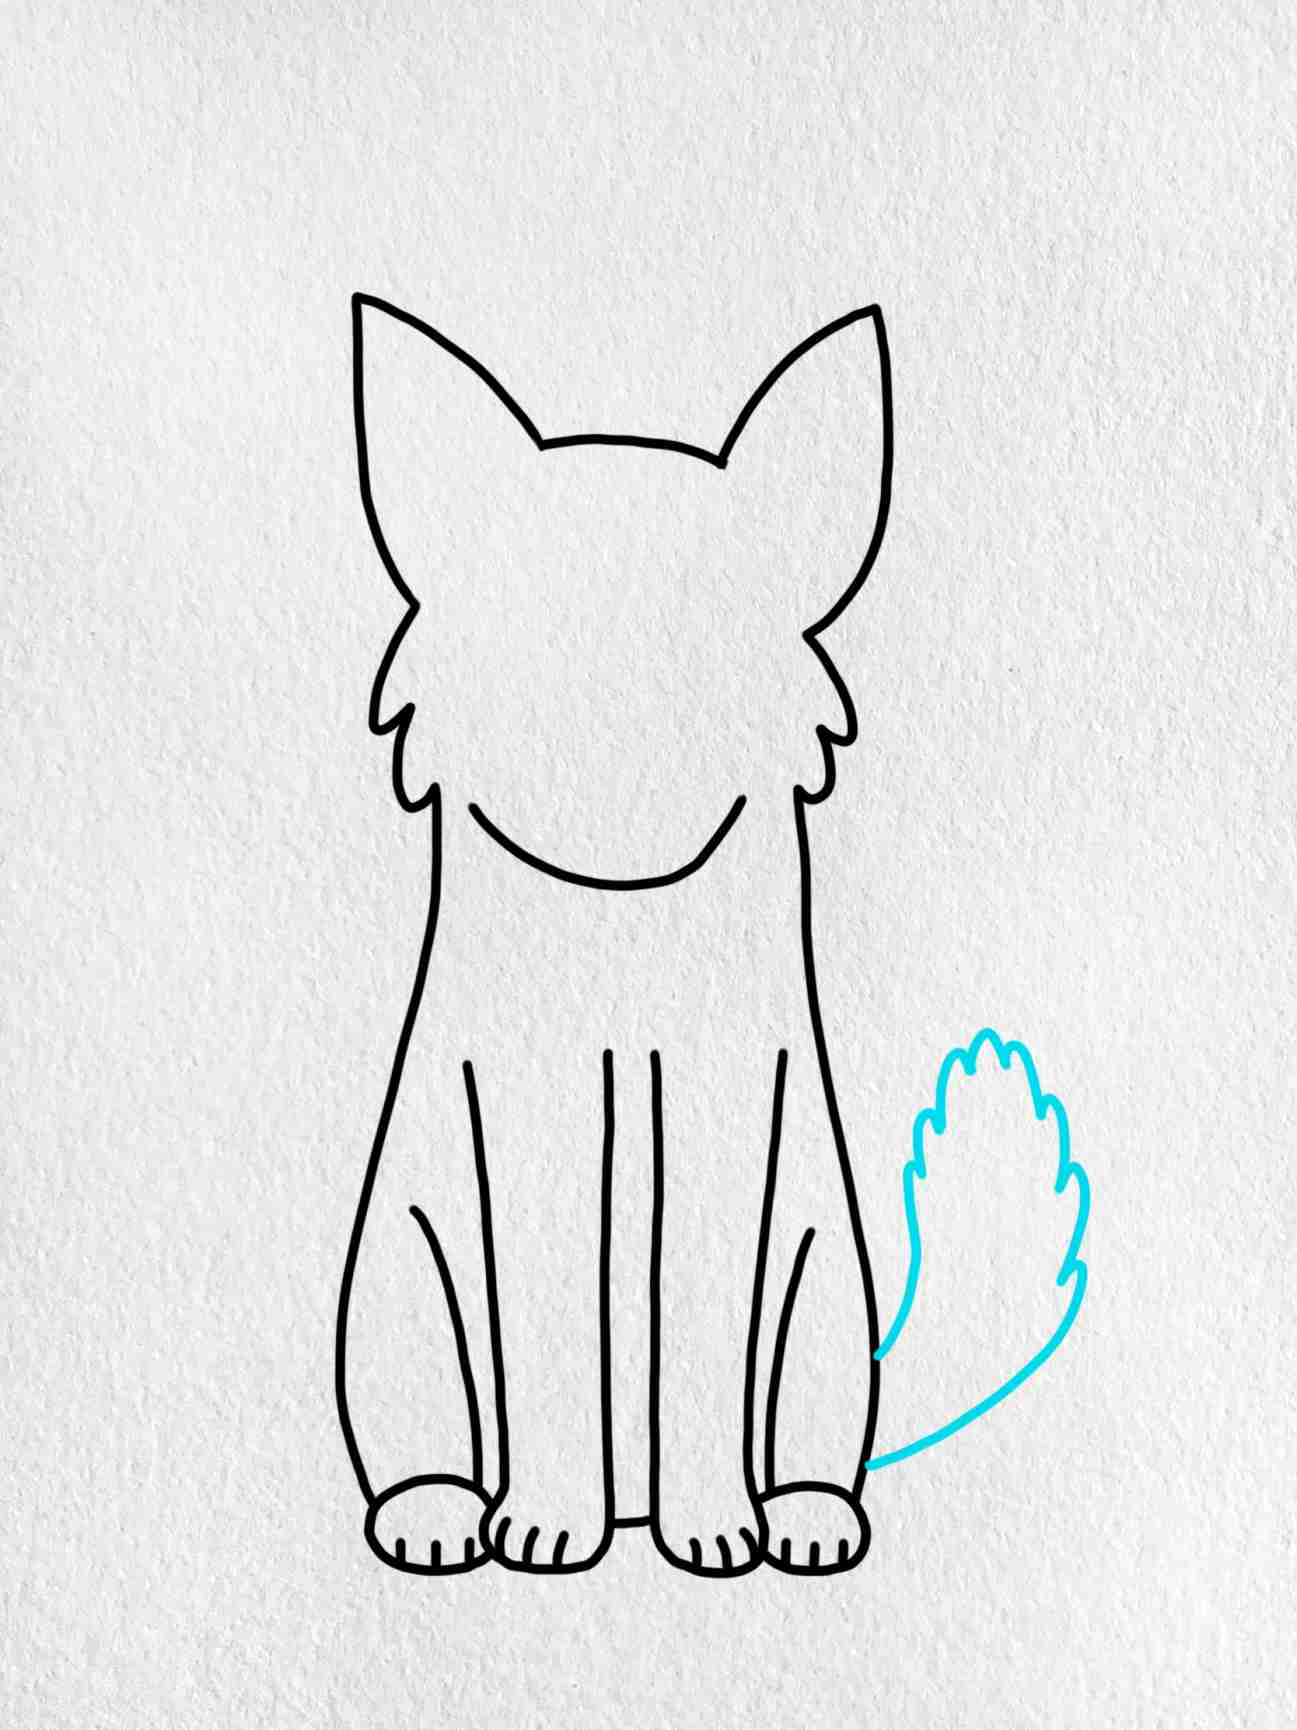 Easy Dog To Draw: Step 4